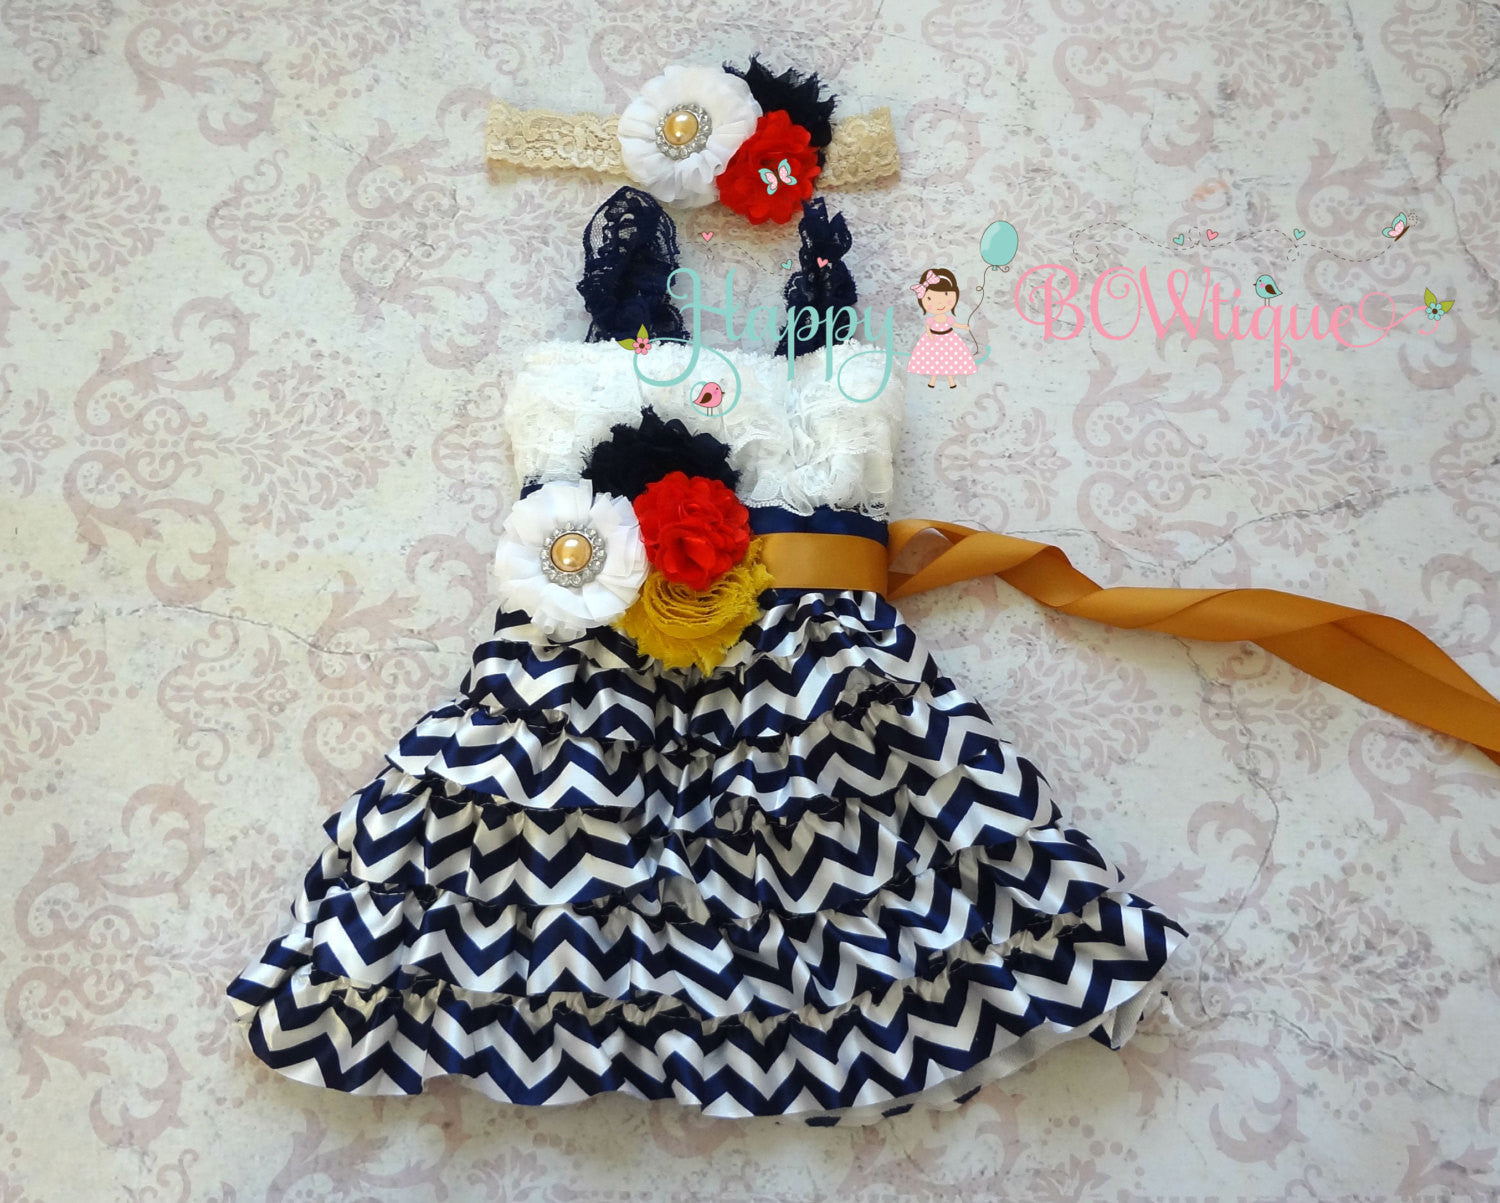 Navy Chevron Petti lace Dress - Happy BOWtique - children's clothing, Baby Girl clothing